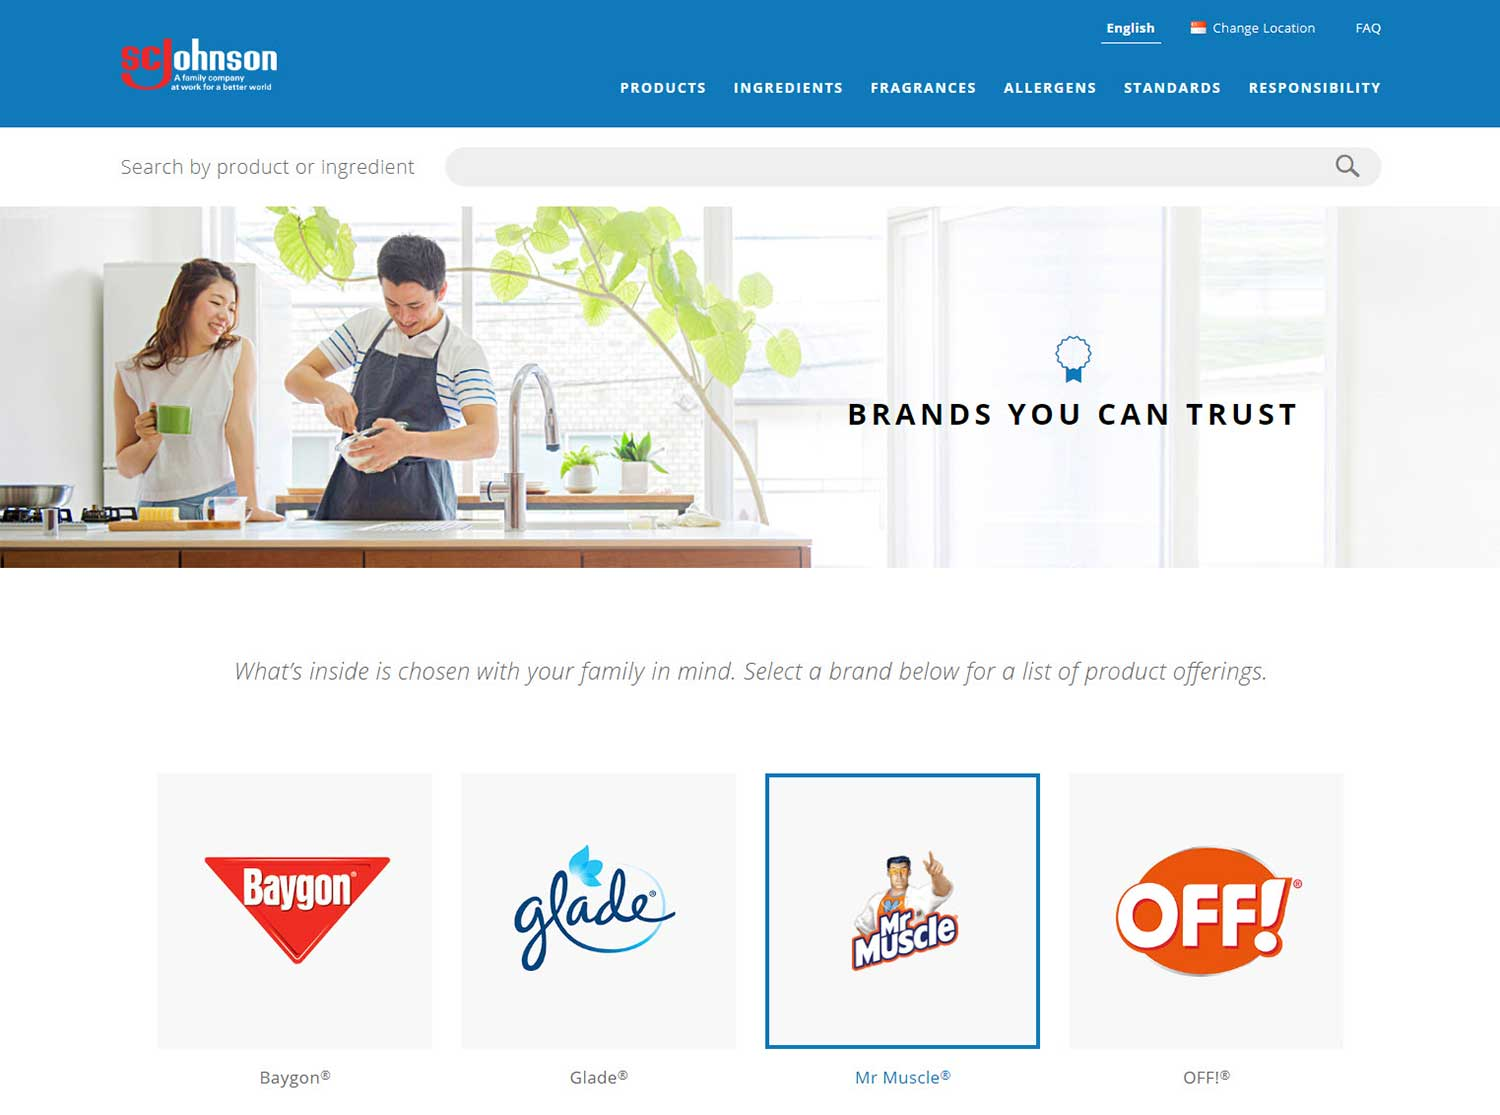 SC Johnson product ingredient site brand page